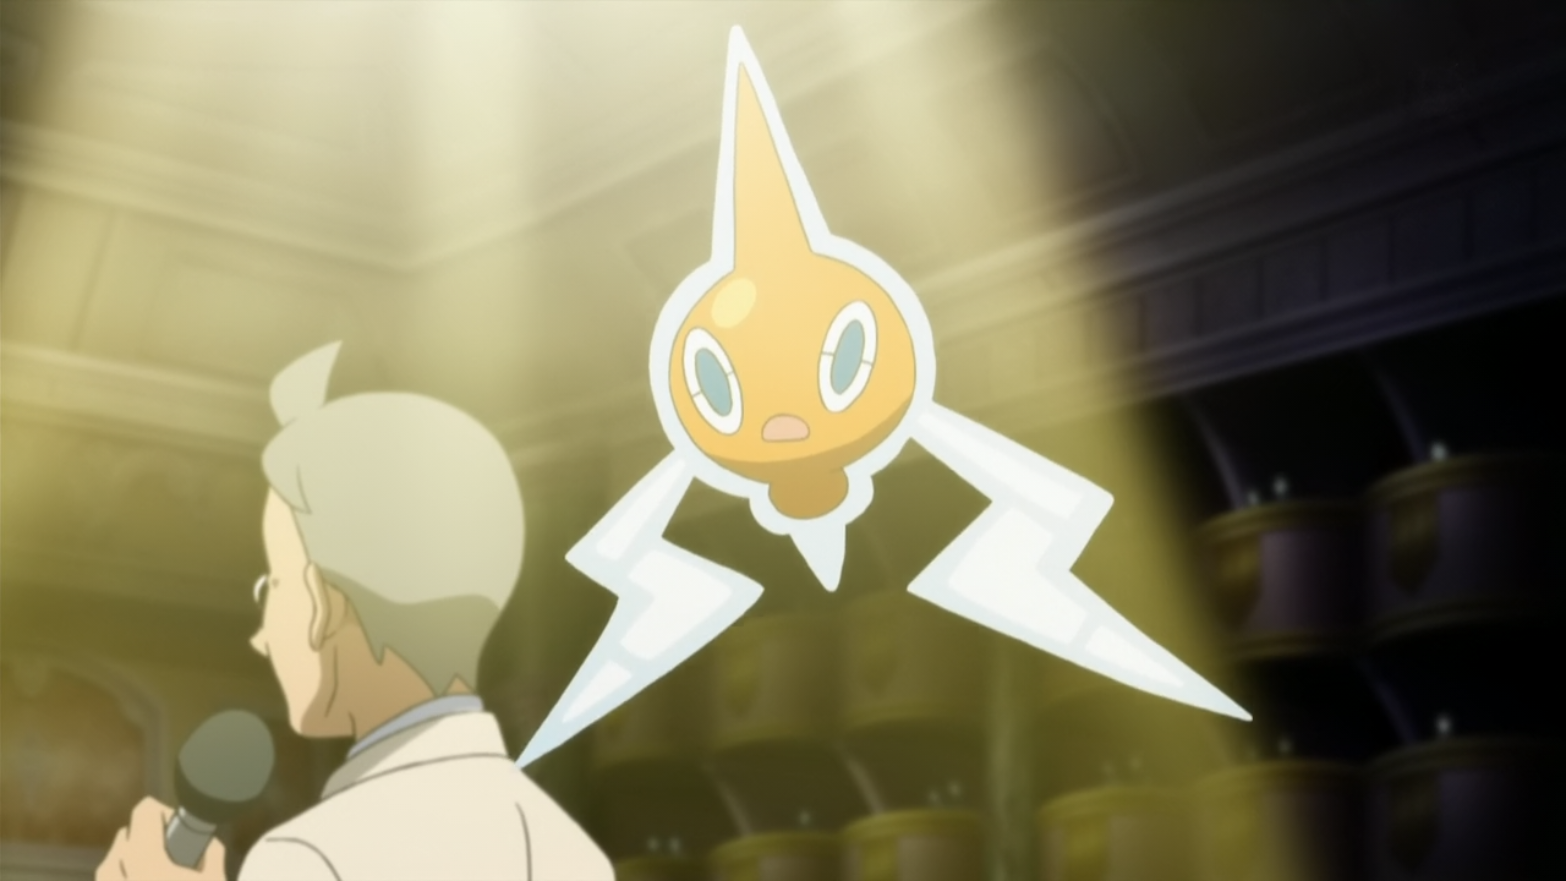 Weston had a Rotom, who was scared several years ago from Mantle's Krookodile, causing Weston to lose the hotel. With the help of the heroes, Rotom came back in time and battled with Weston, assuming the forms of Fridge, Mow and Wash Rotom.